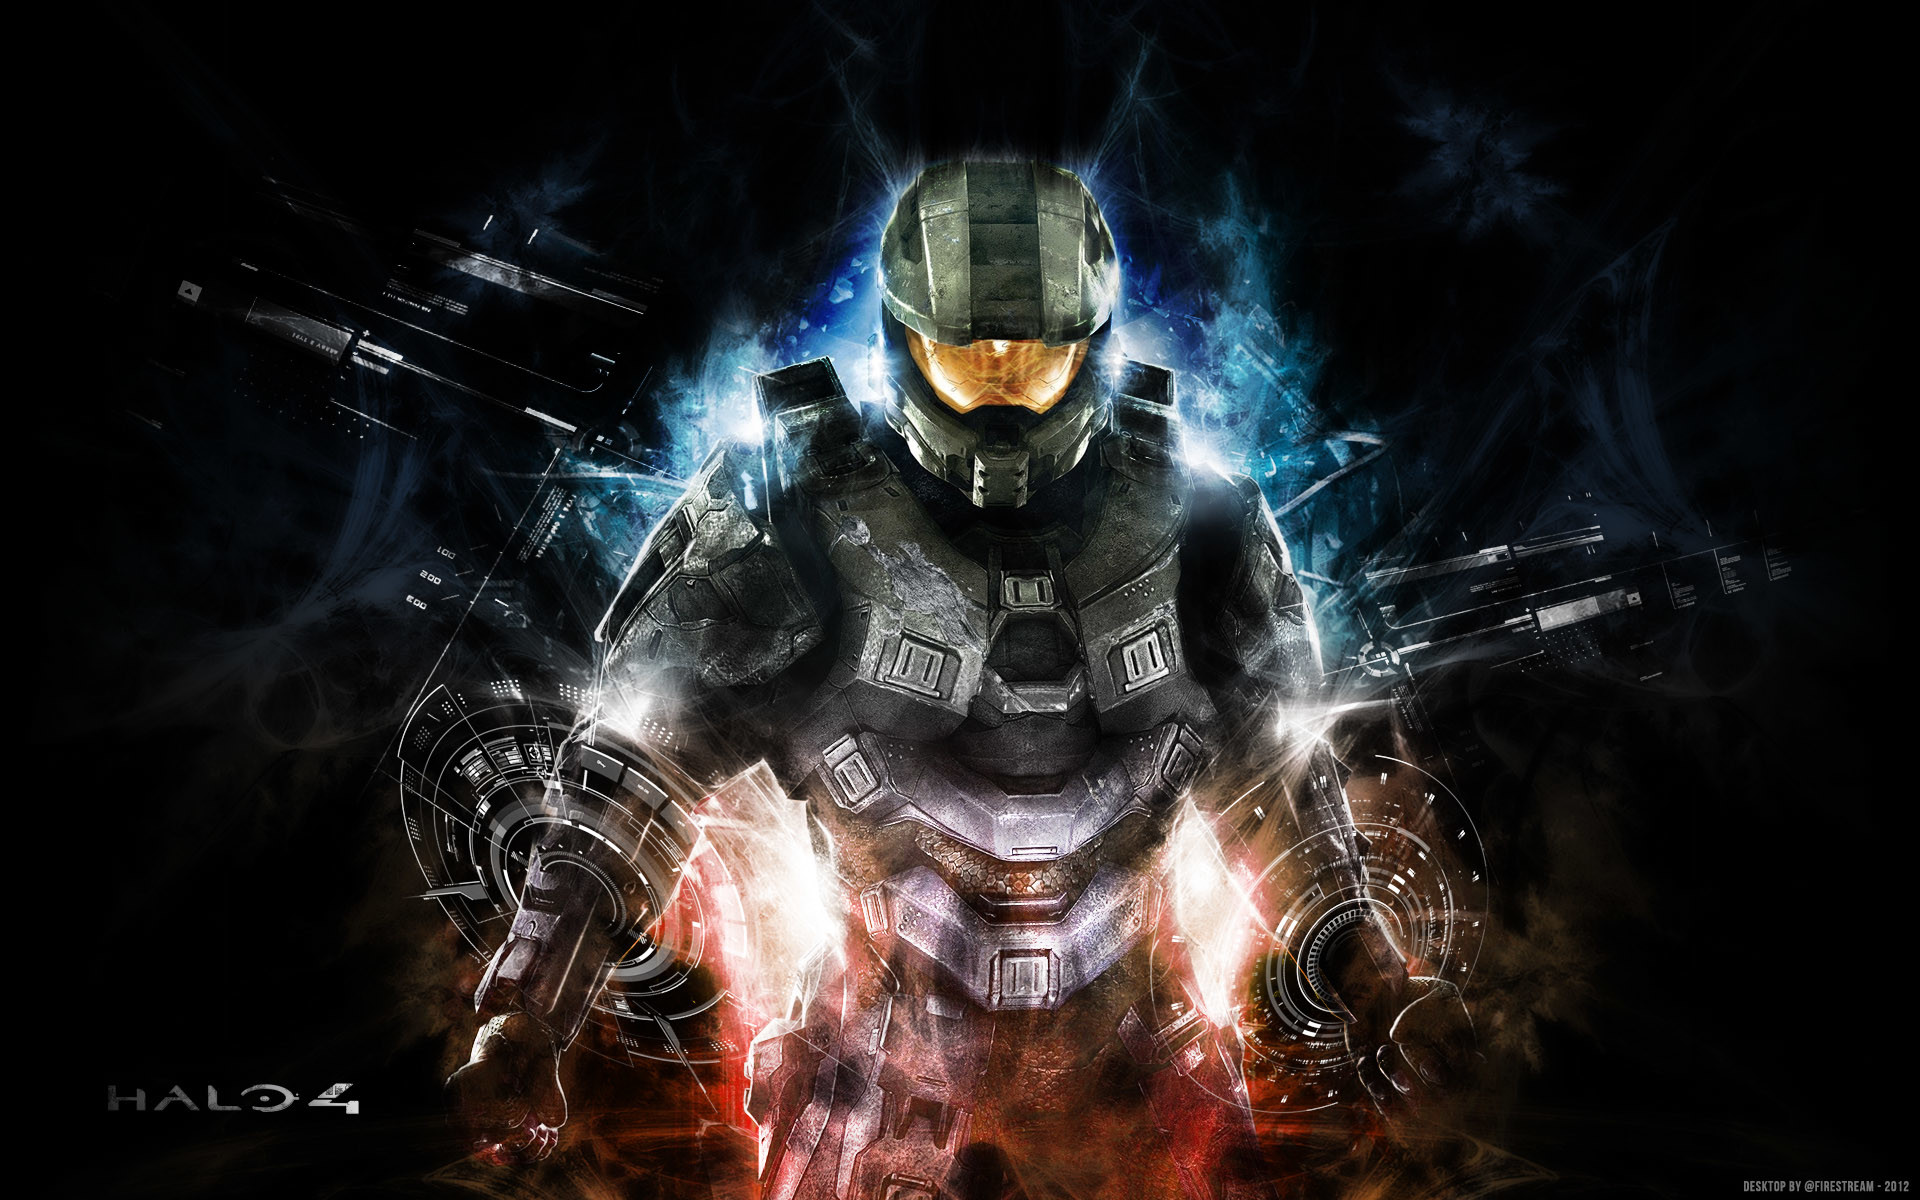 1920x1200 Awesome Halo Theme With HD Wallpapers 1280×720 Halo 4 Wallpapers HD (51  Wallpapers